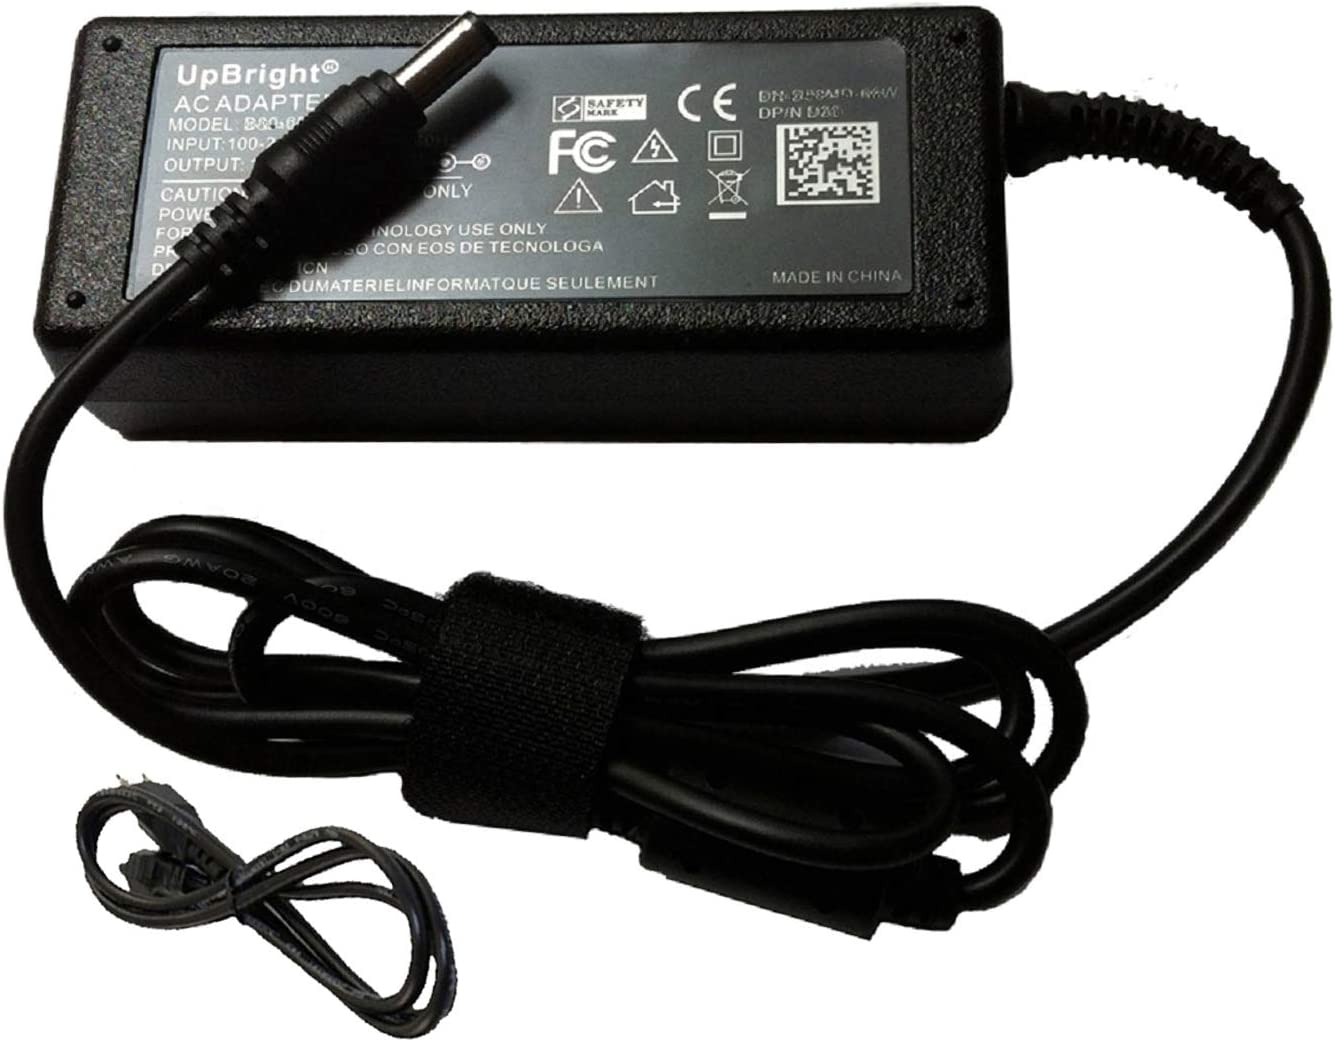 UpBright 12V AC/DC Adapter Replacement for FSP FSP040-DGAA1 Delta ADP-40DD B Check Point 9NA0402144 Philips Dell S2340 2230MX S2240M S2216H S2340L HIPRO HP-O2040D43 12VDC 40W (w/OD:5.5mm Tip) Charger